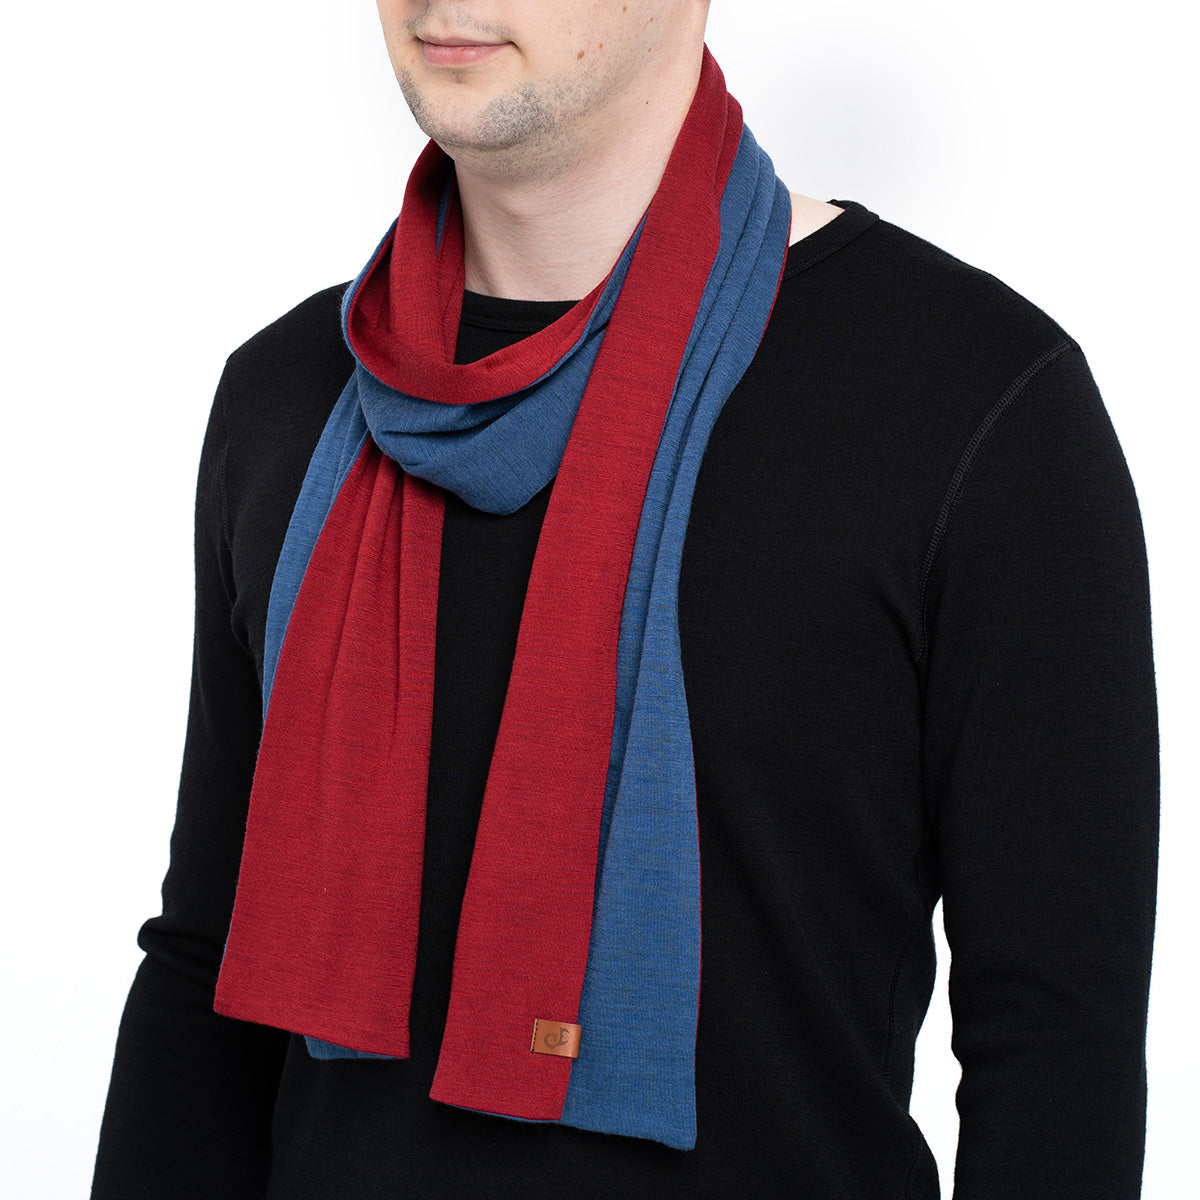 menique Men's Merino Scarf Denim/Royal Cherry Color